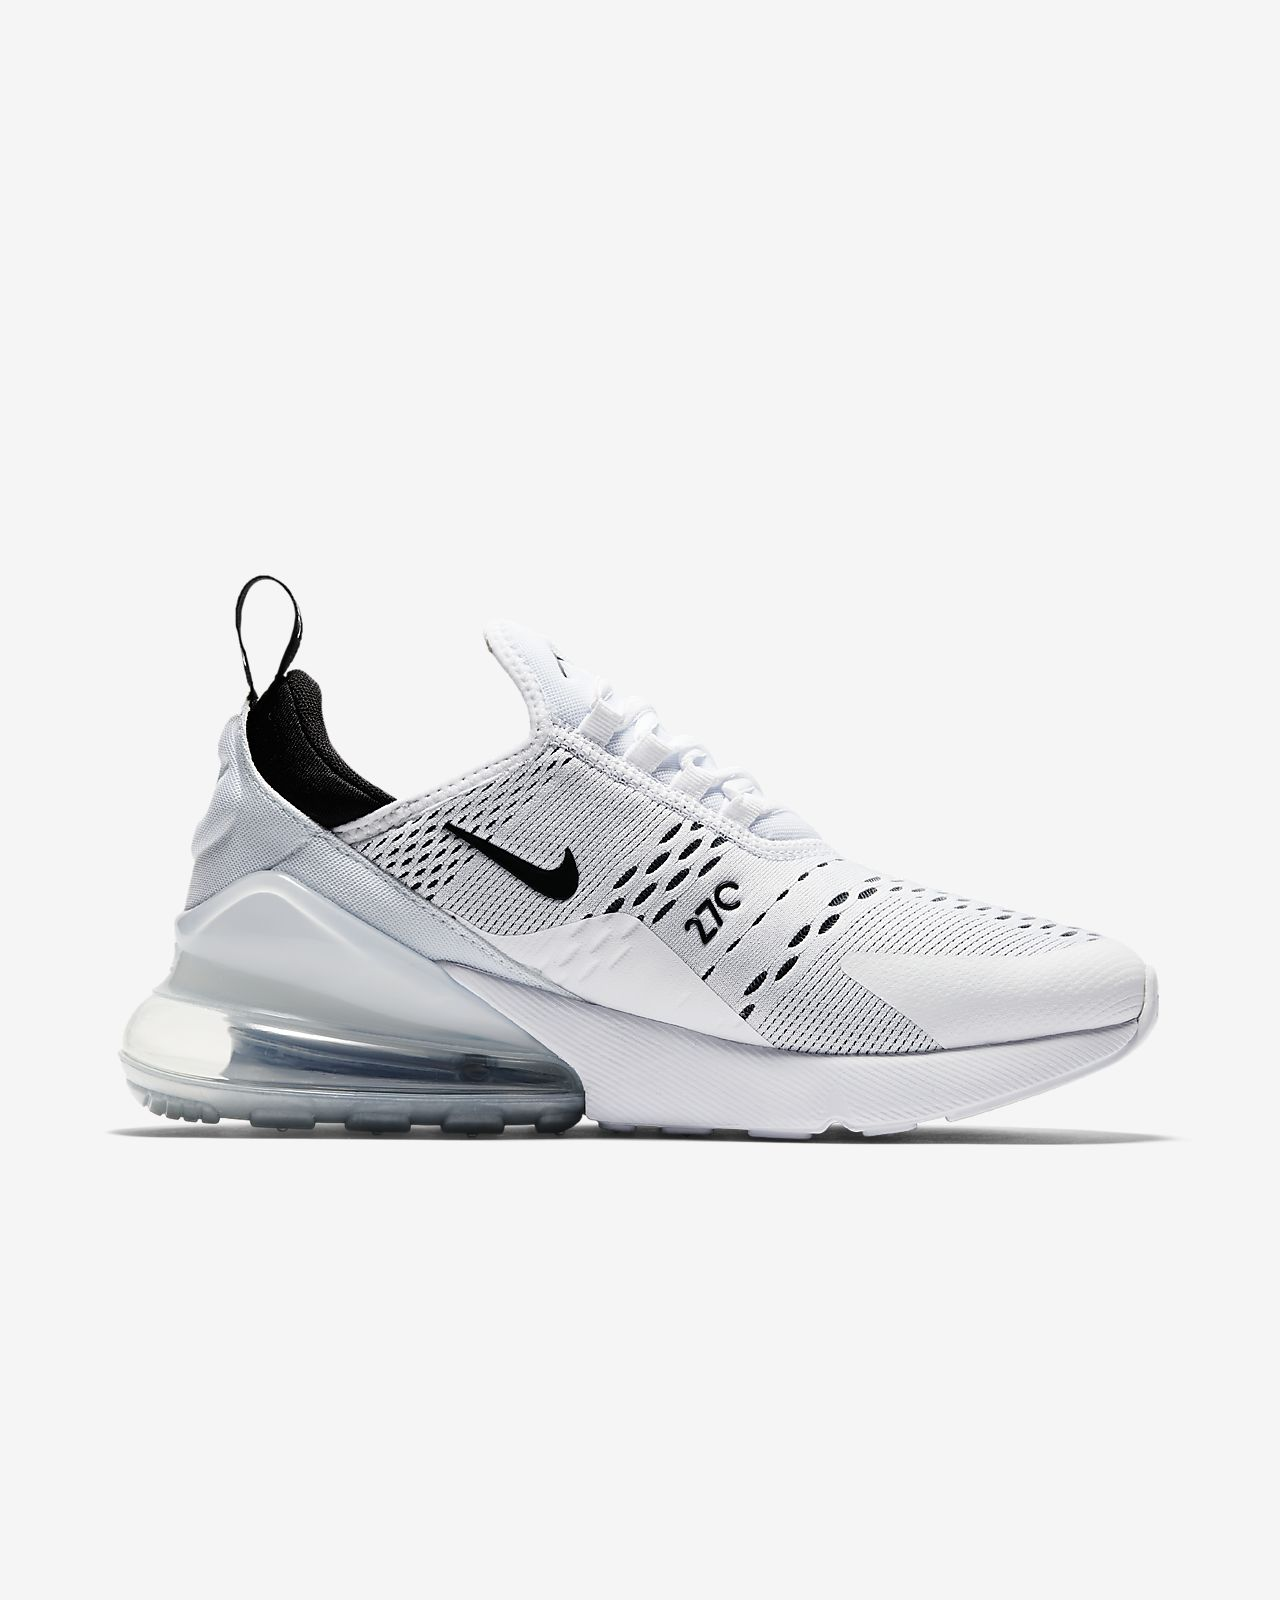 Nike Air Max 270 Damenschuh